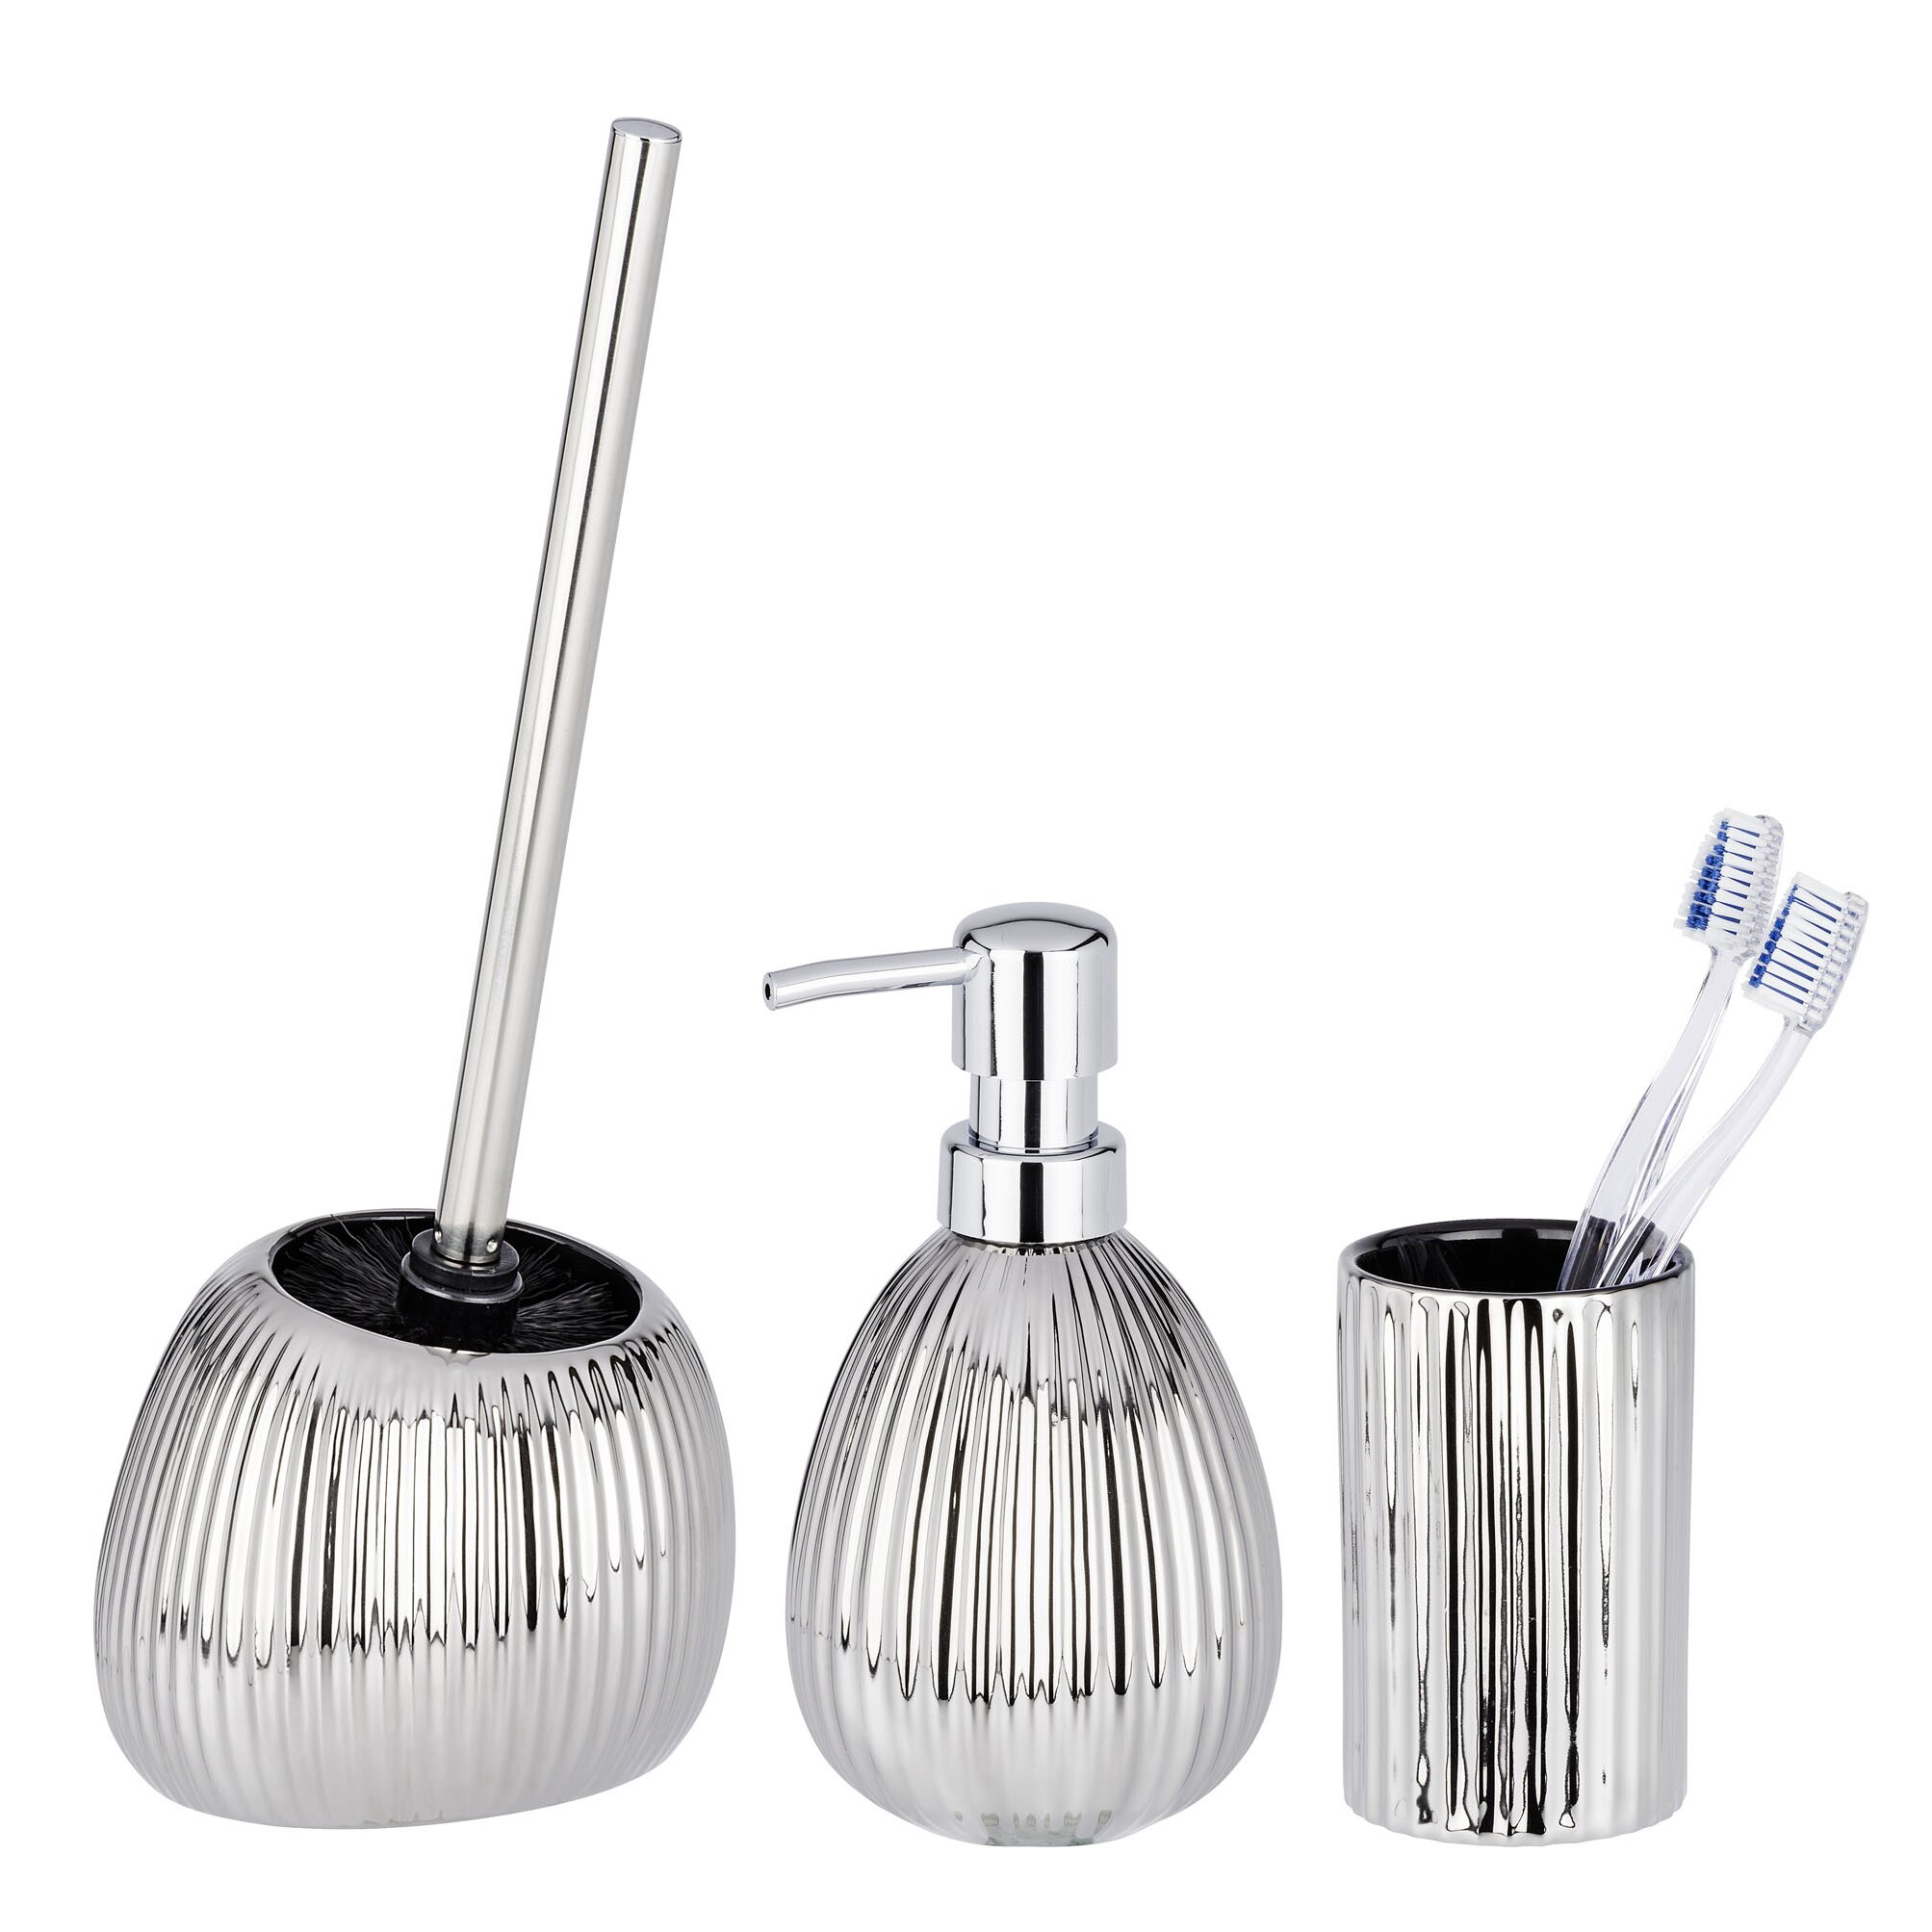 Wenko polaris riff 3 piece bathroom accessory set wayfair uk for Three piece bathroom